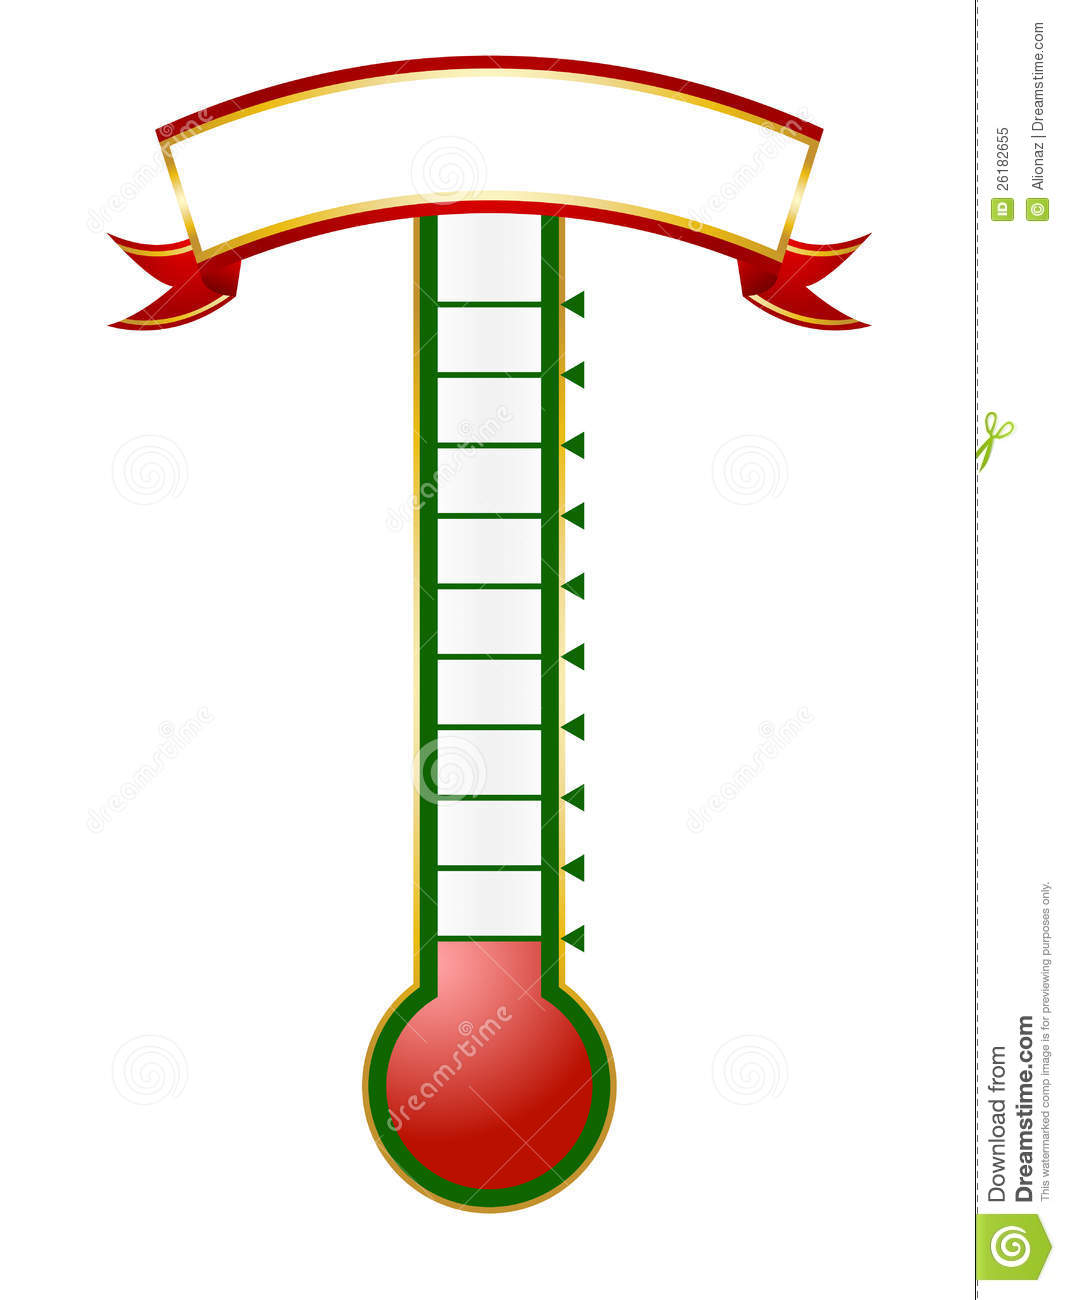 Goal Thermometer Royalty Free Stock Photo - Image: 26182655